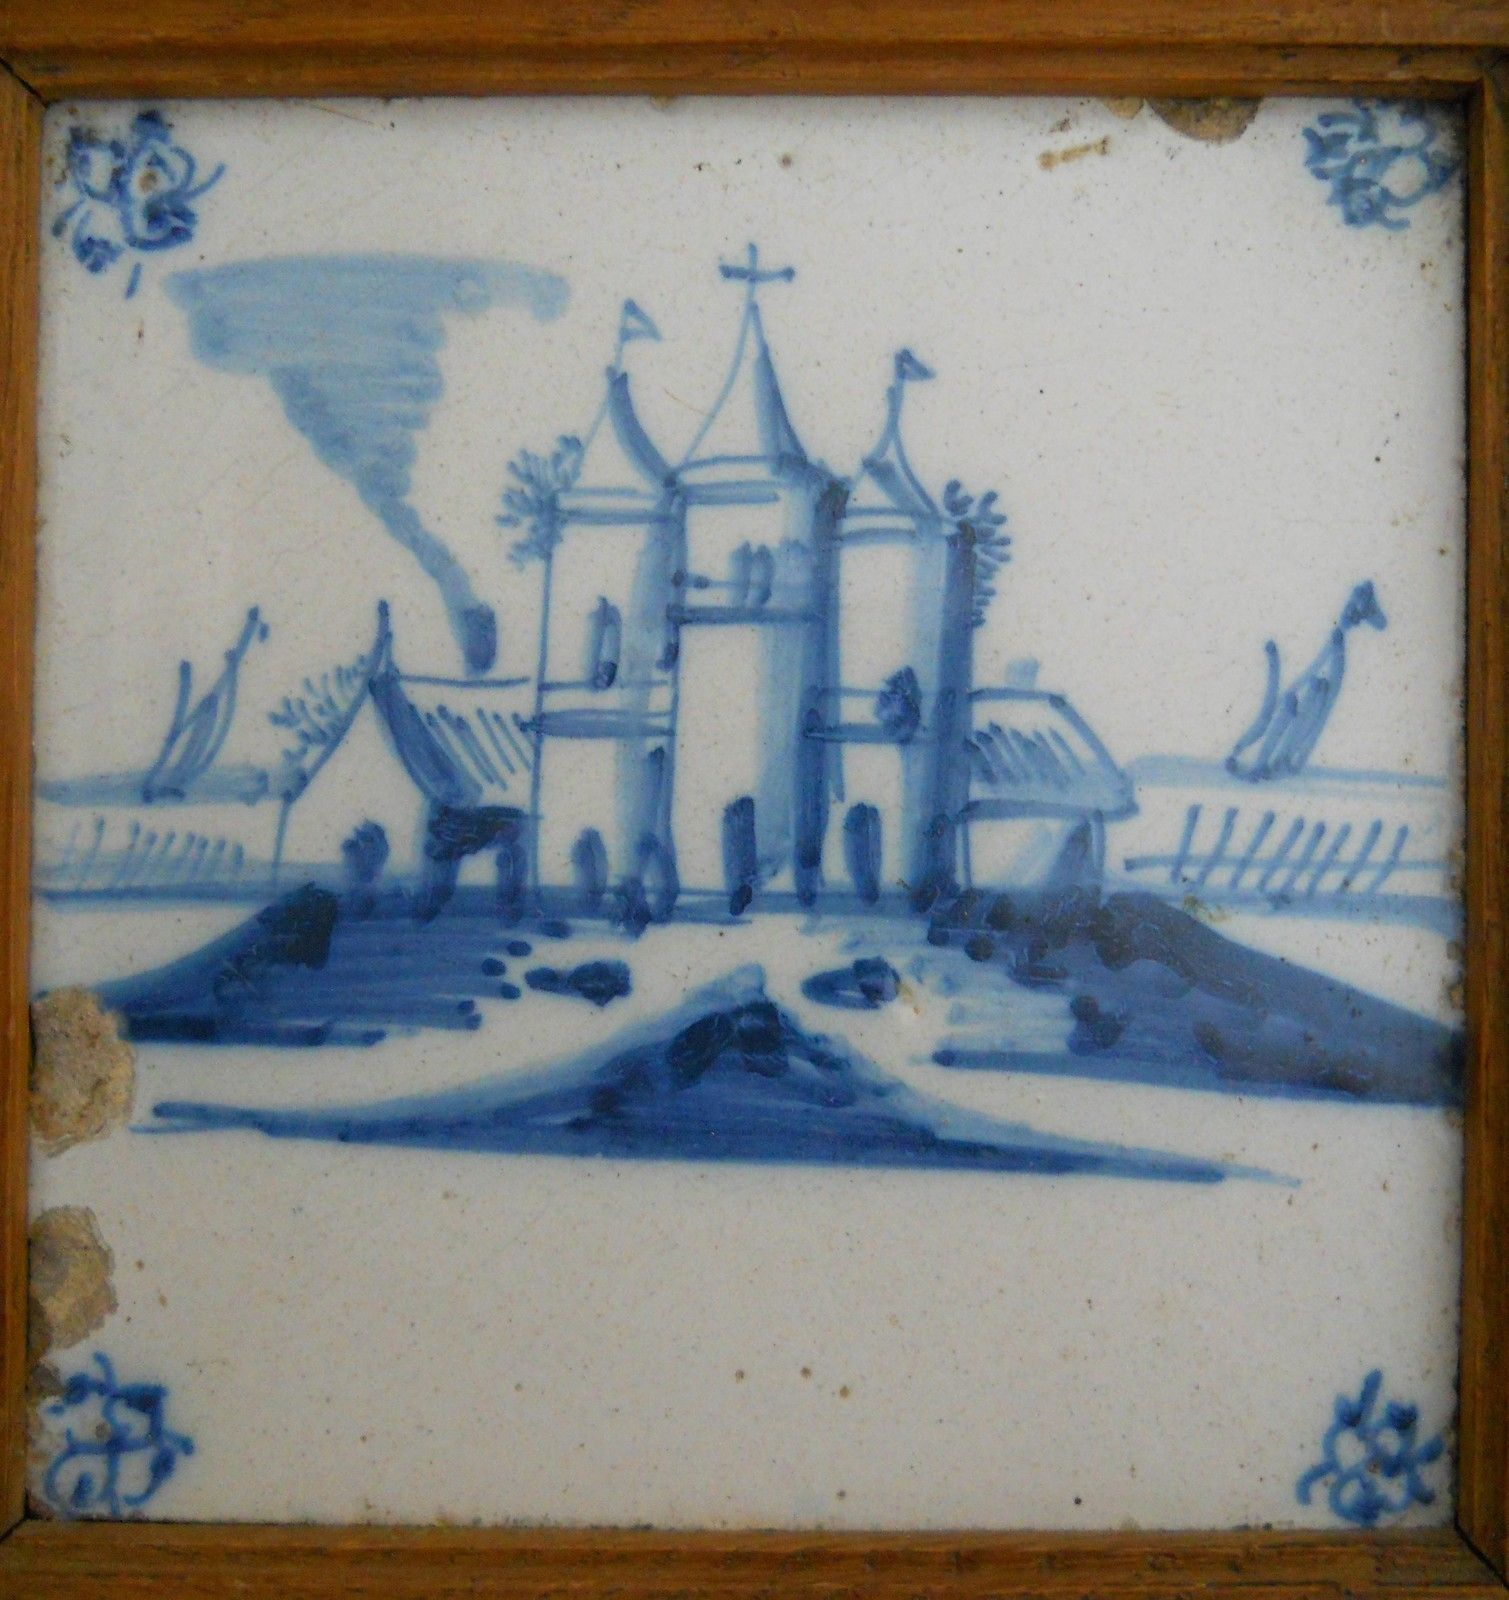 Delft tile with cobalt decoration dutch 18th century artmosaic delft tile with cobalt decoration dutch century one of the rooms in my 1690 farmhouse has this ceramic tile surrounding the fireplace dailygadgetfo Image collections